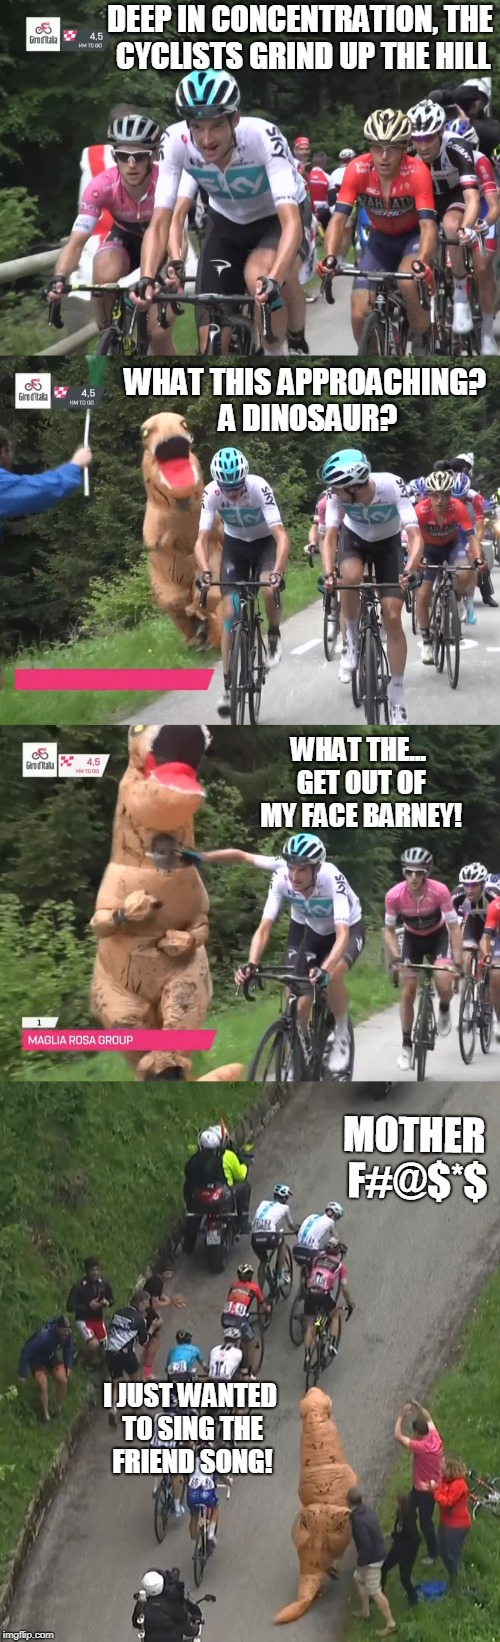 Sometimes your child hood comes back to bite you | DEEP IN CONCENTRATION, THE CYCLISTS GRIND UP THE HILL I JUST WANTED TO SING THE FRIEND SONG! WHAT THIS APPROACHING? A DINOSAUR? WHAT THE...  | image tagged in childhood bites | made w/ Imgflip meme maker